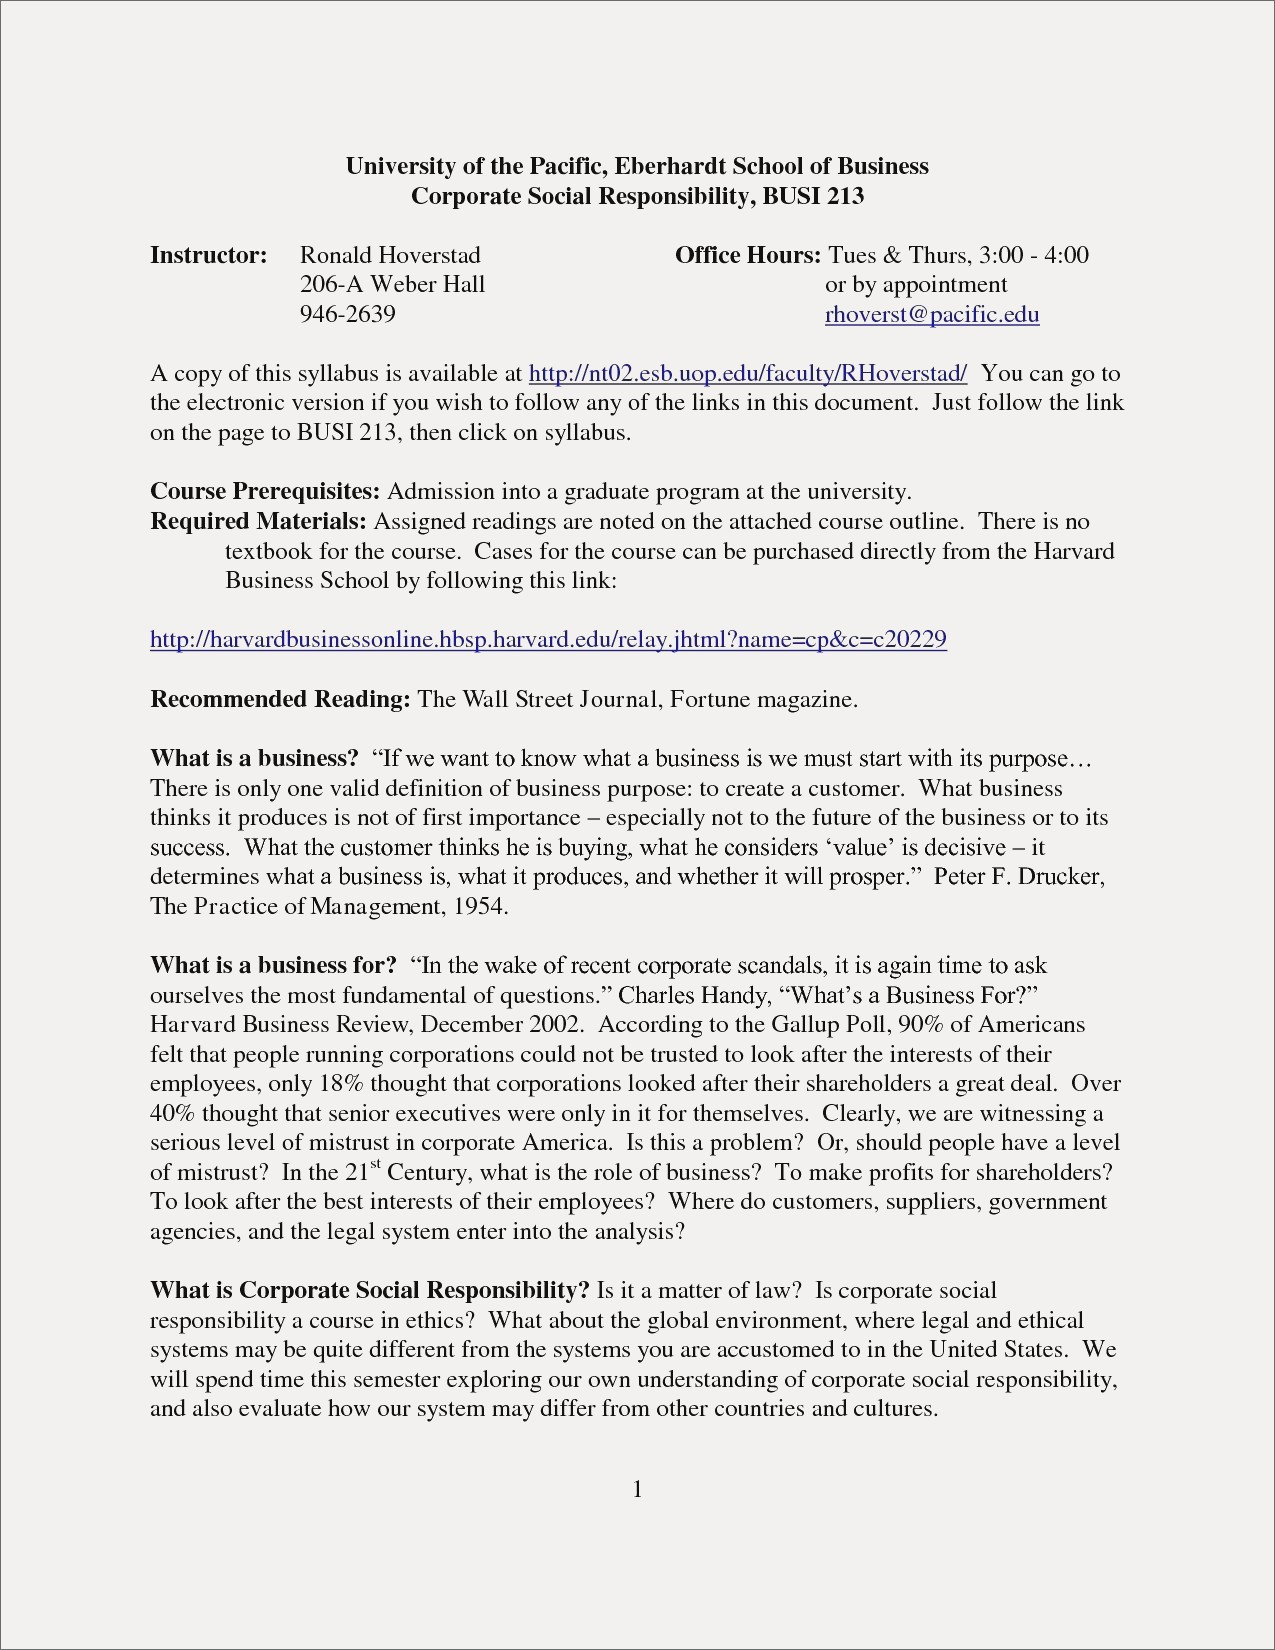 Lawyer Resume Template - Legal Resume Template New Law Student Resume Template Best Resume